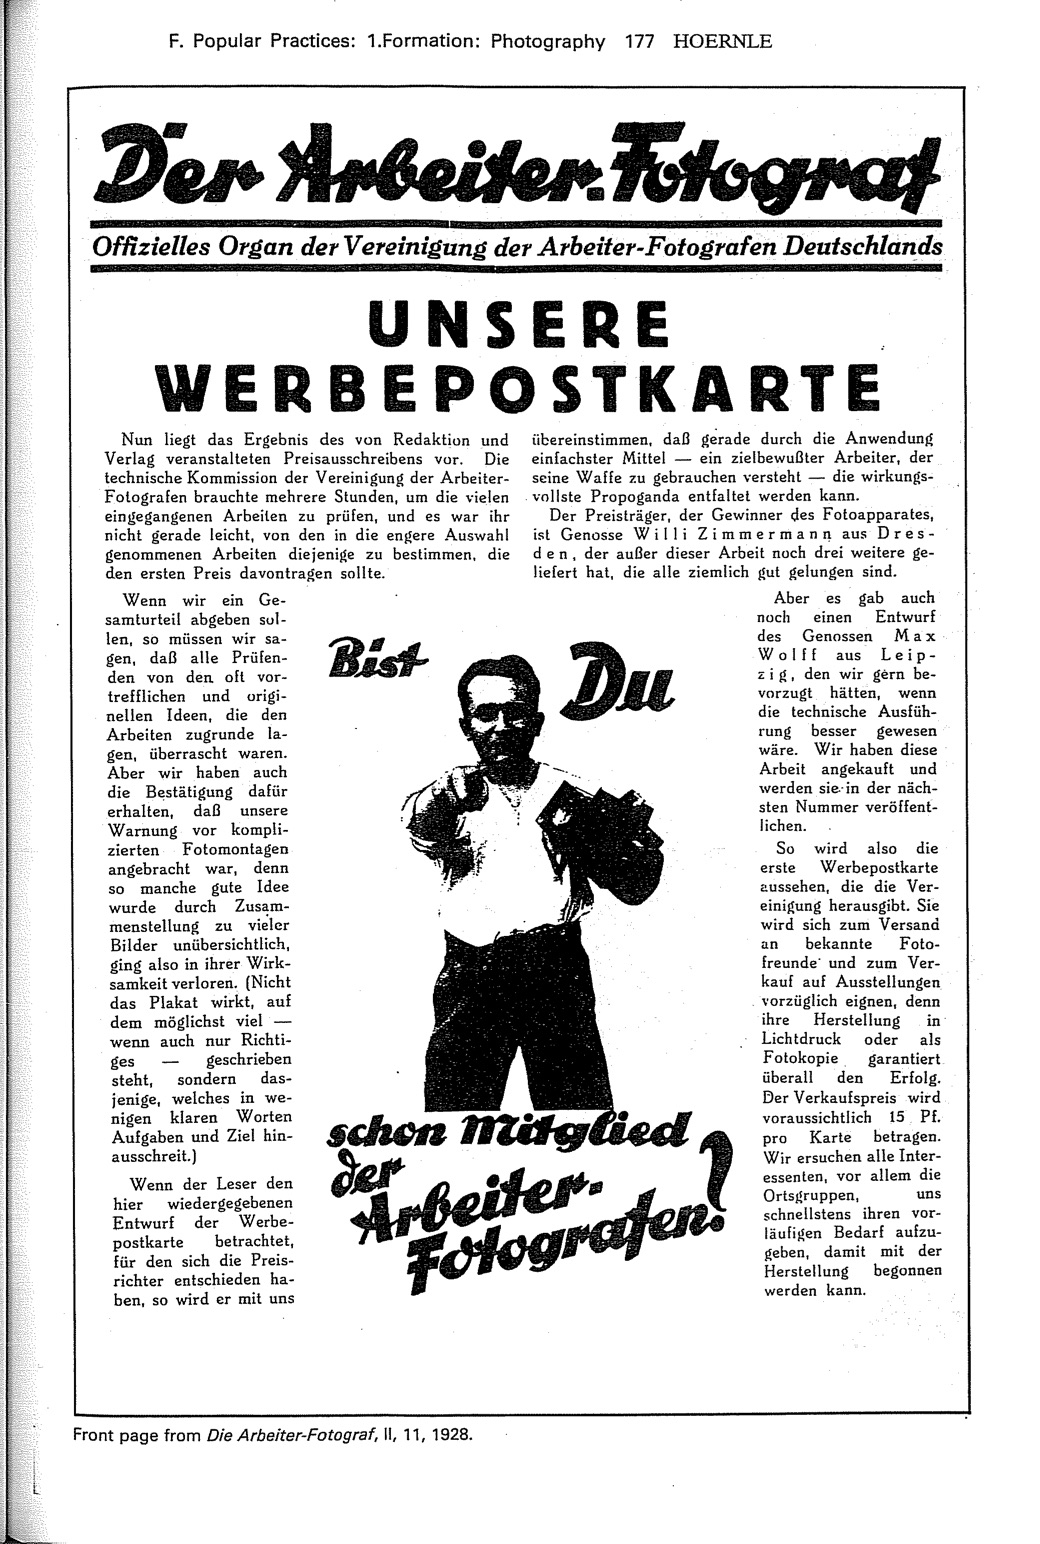 Front page from Die Arbeiter-Fotograf, 11, 11, 1928.